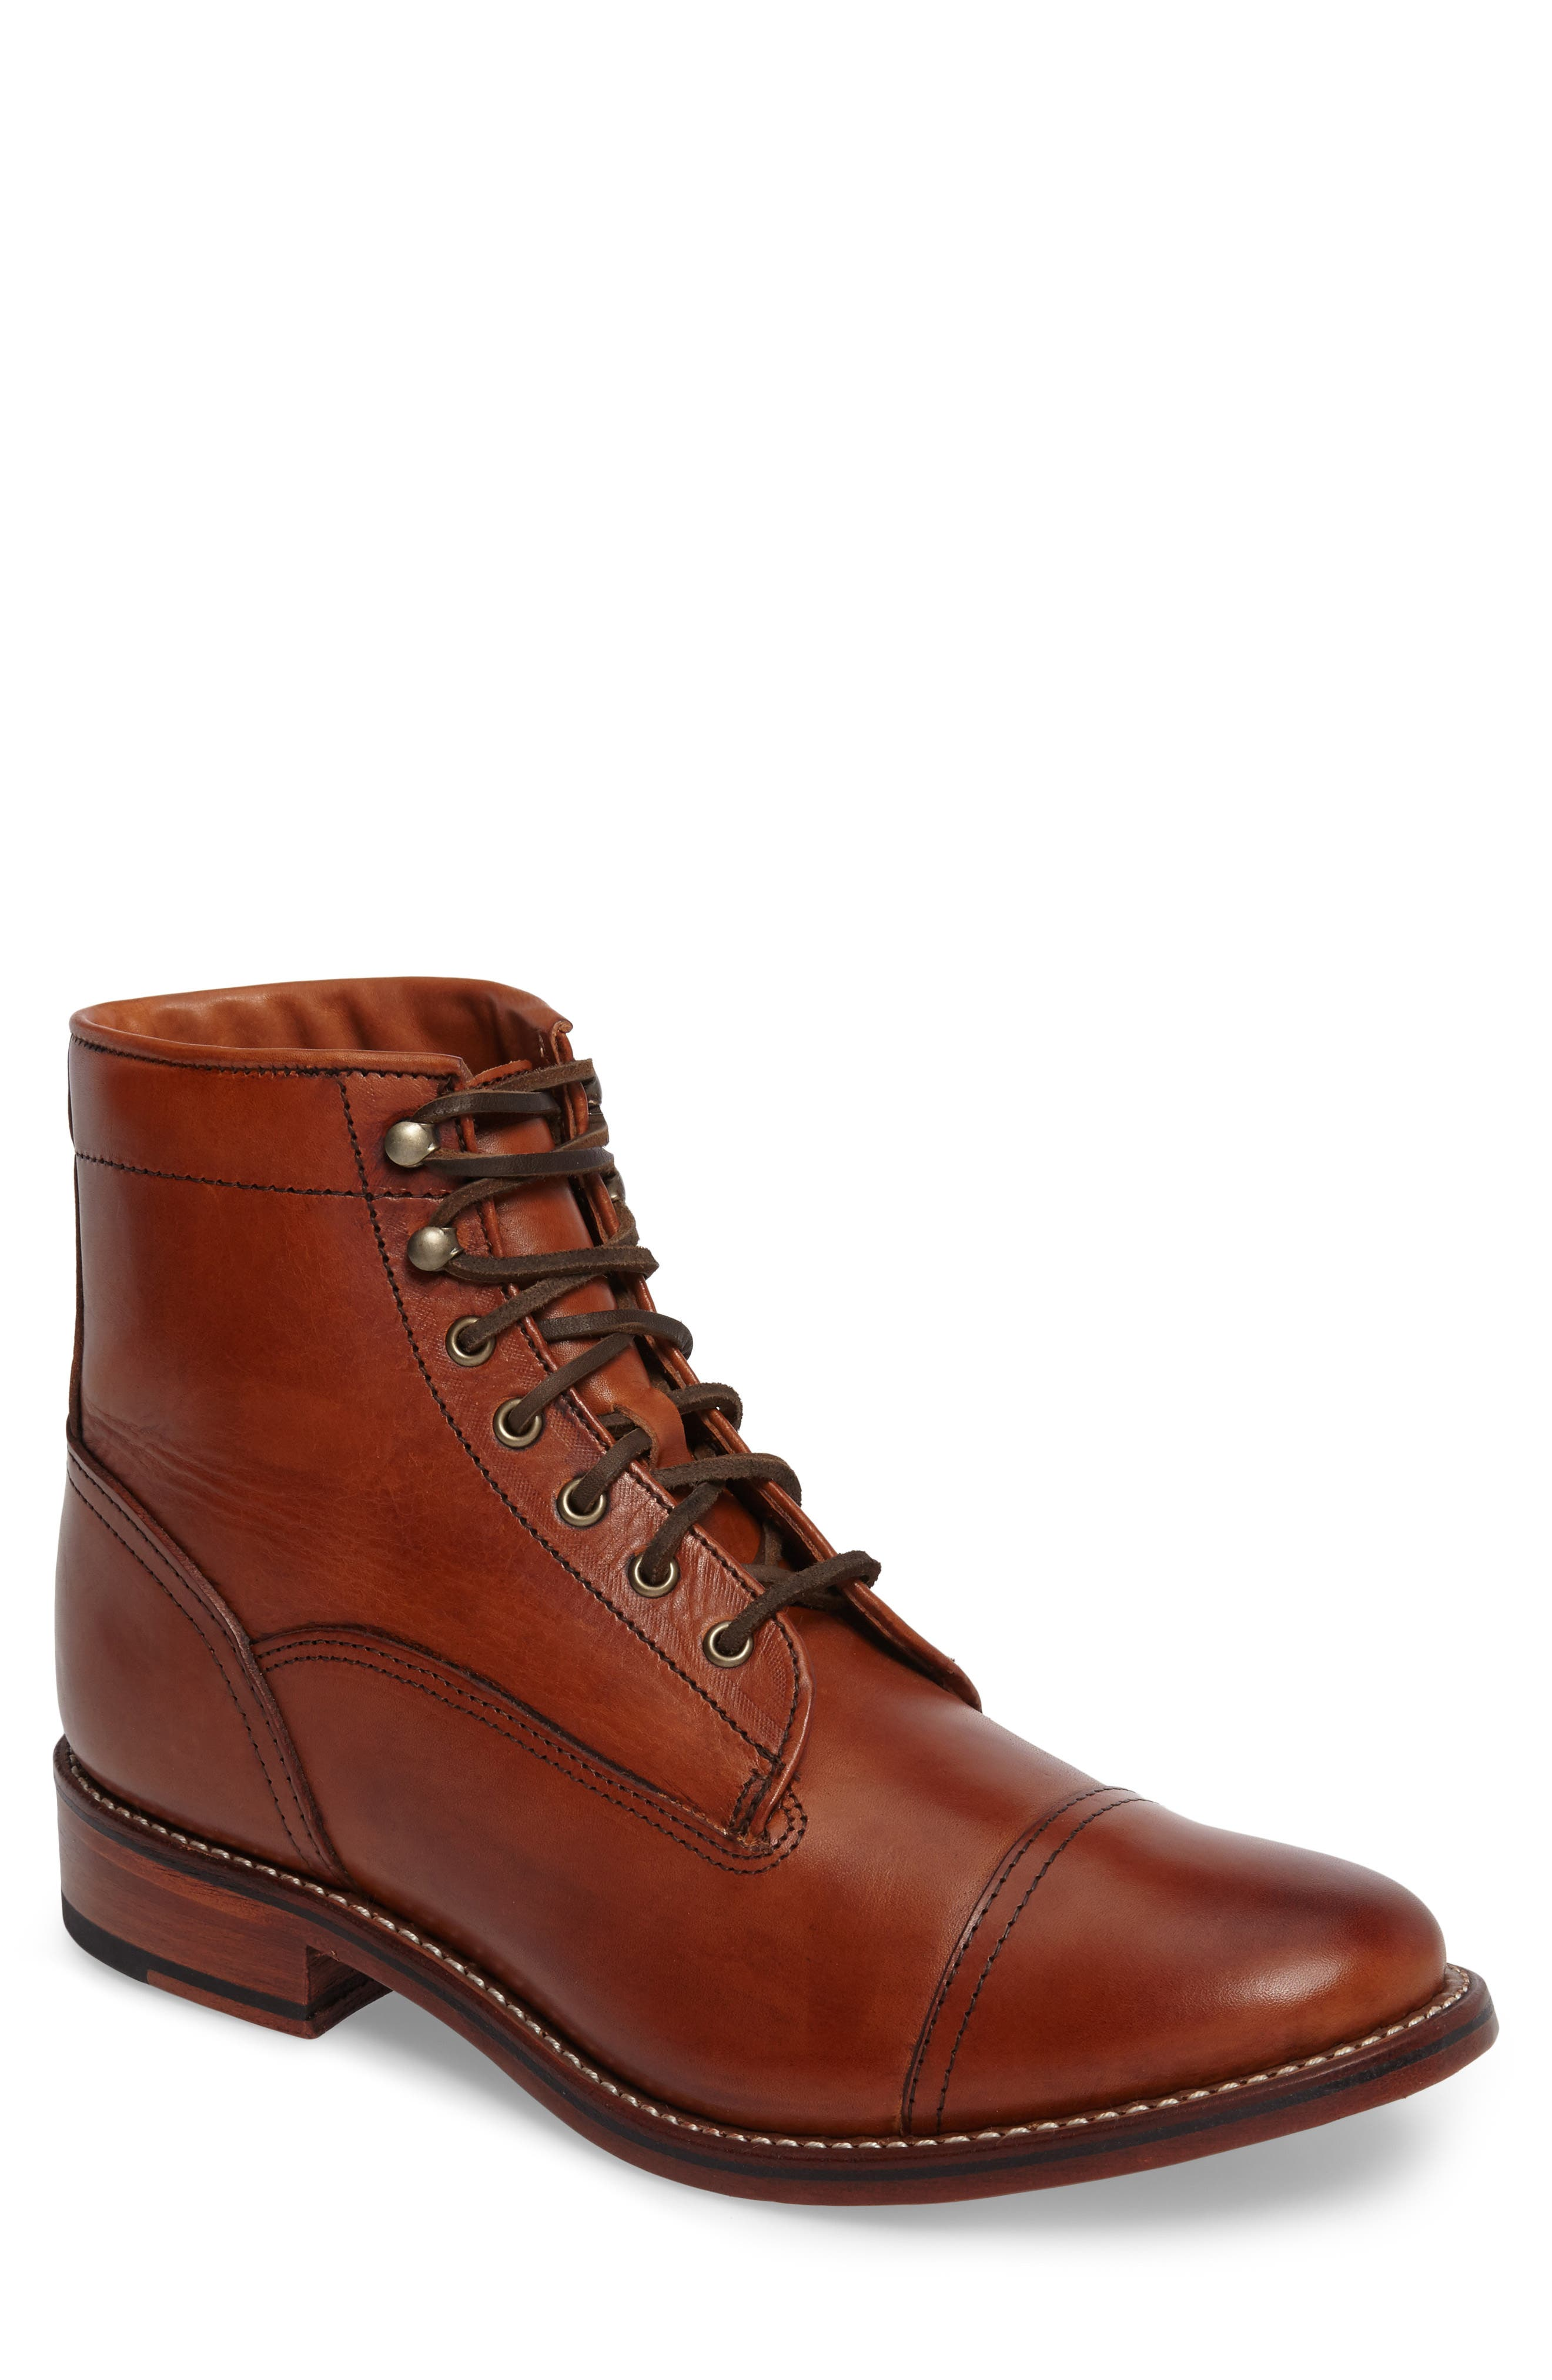 Highlands Cap Toe Boot,                         Main,                         color, Cognac Leather